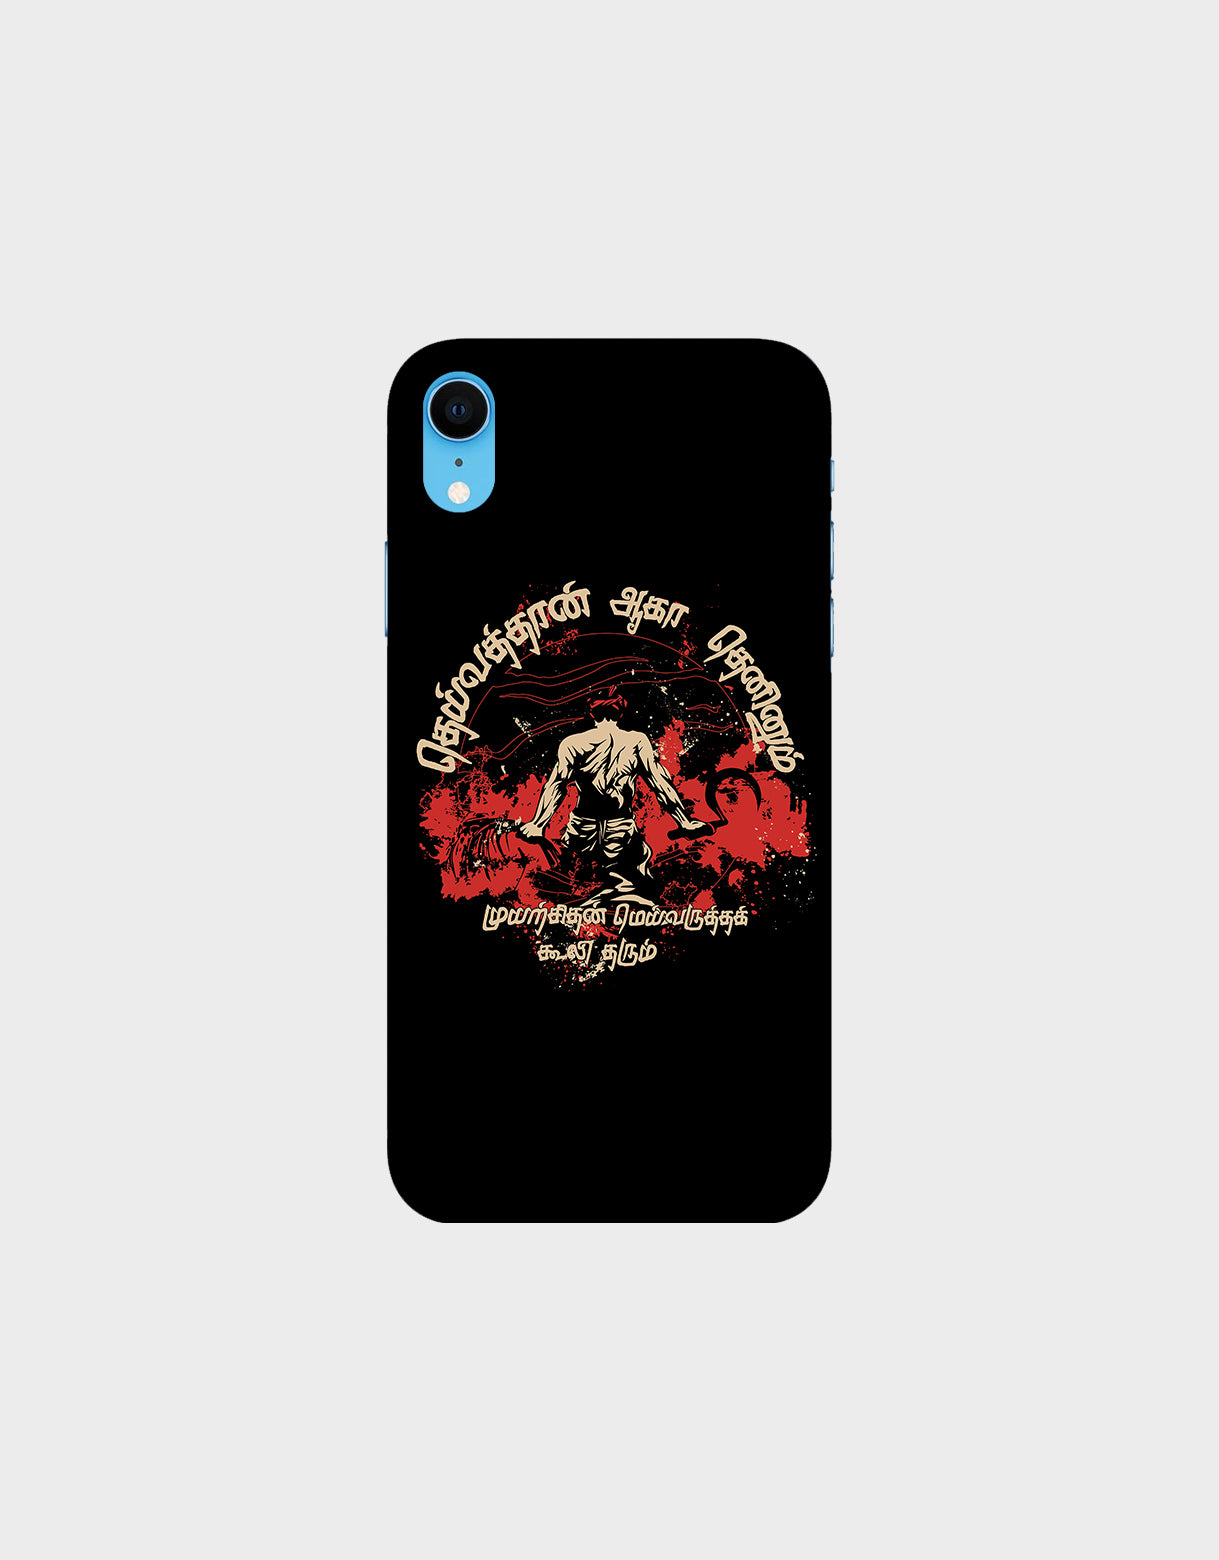 Theivathan - iPhone XR Mobile covers